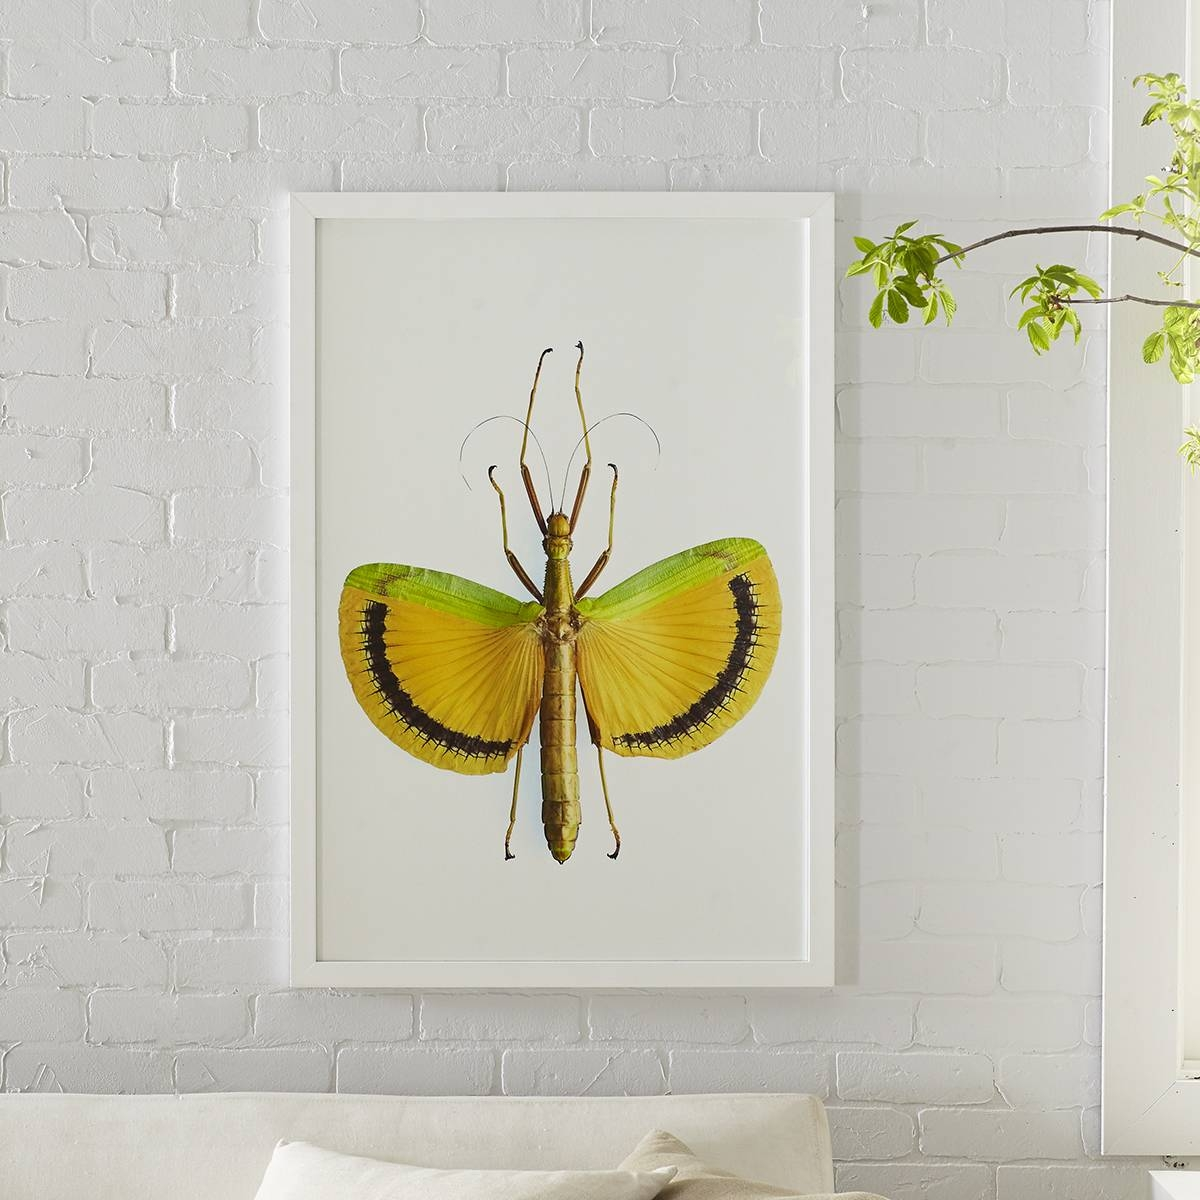 Stick Insect Wall Art – Yellow Umbrella | Wisteria Intended For Latest Insect Wall Art (View 23 of 30)